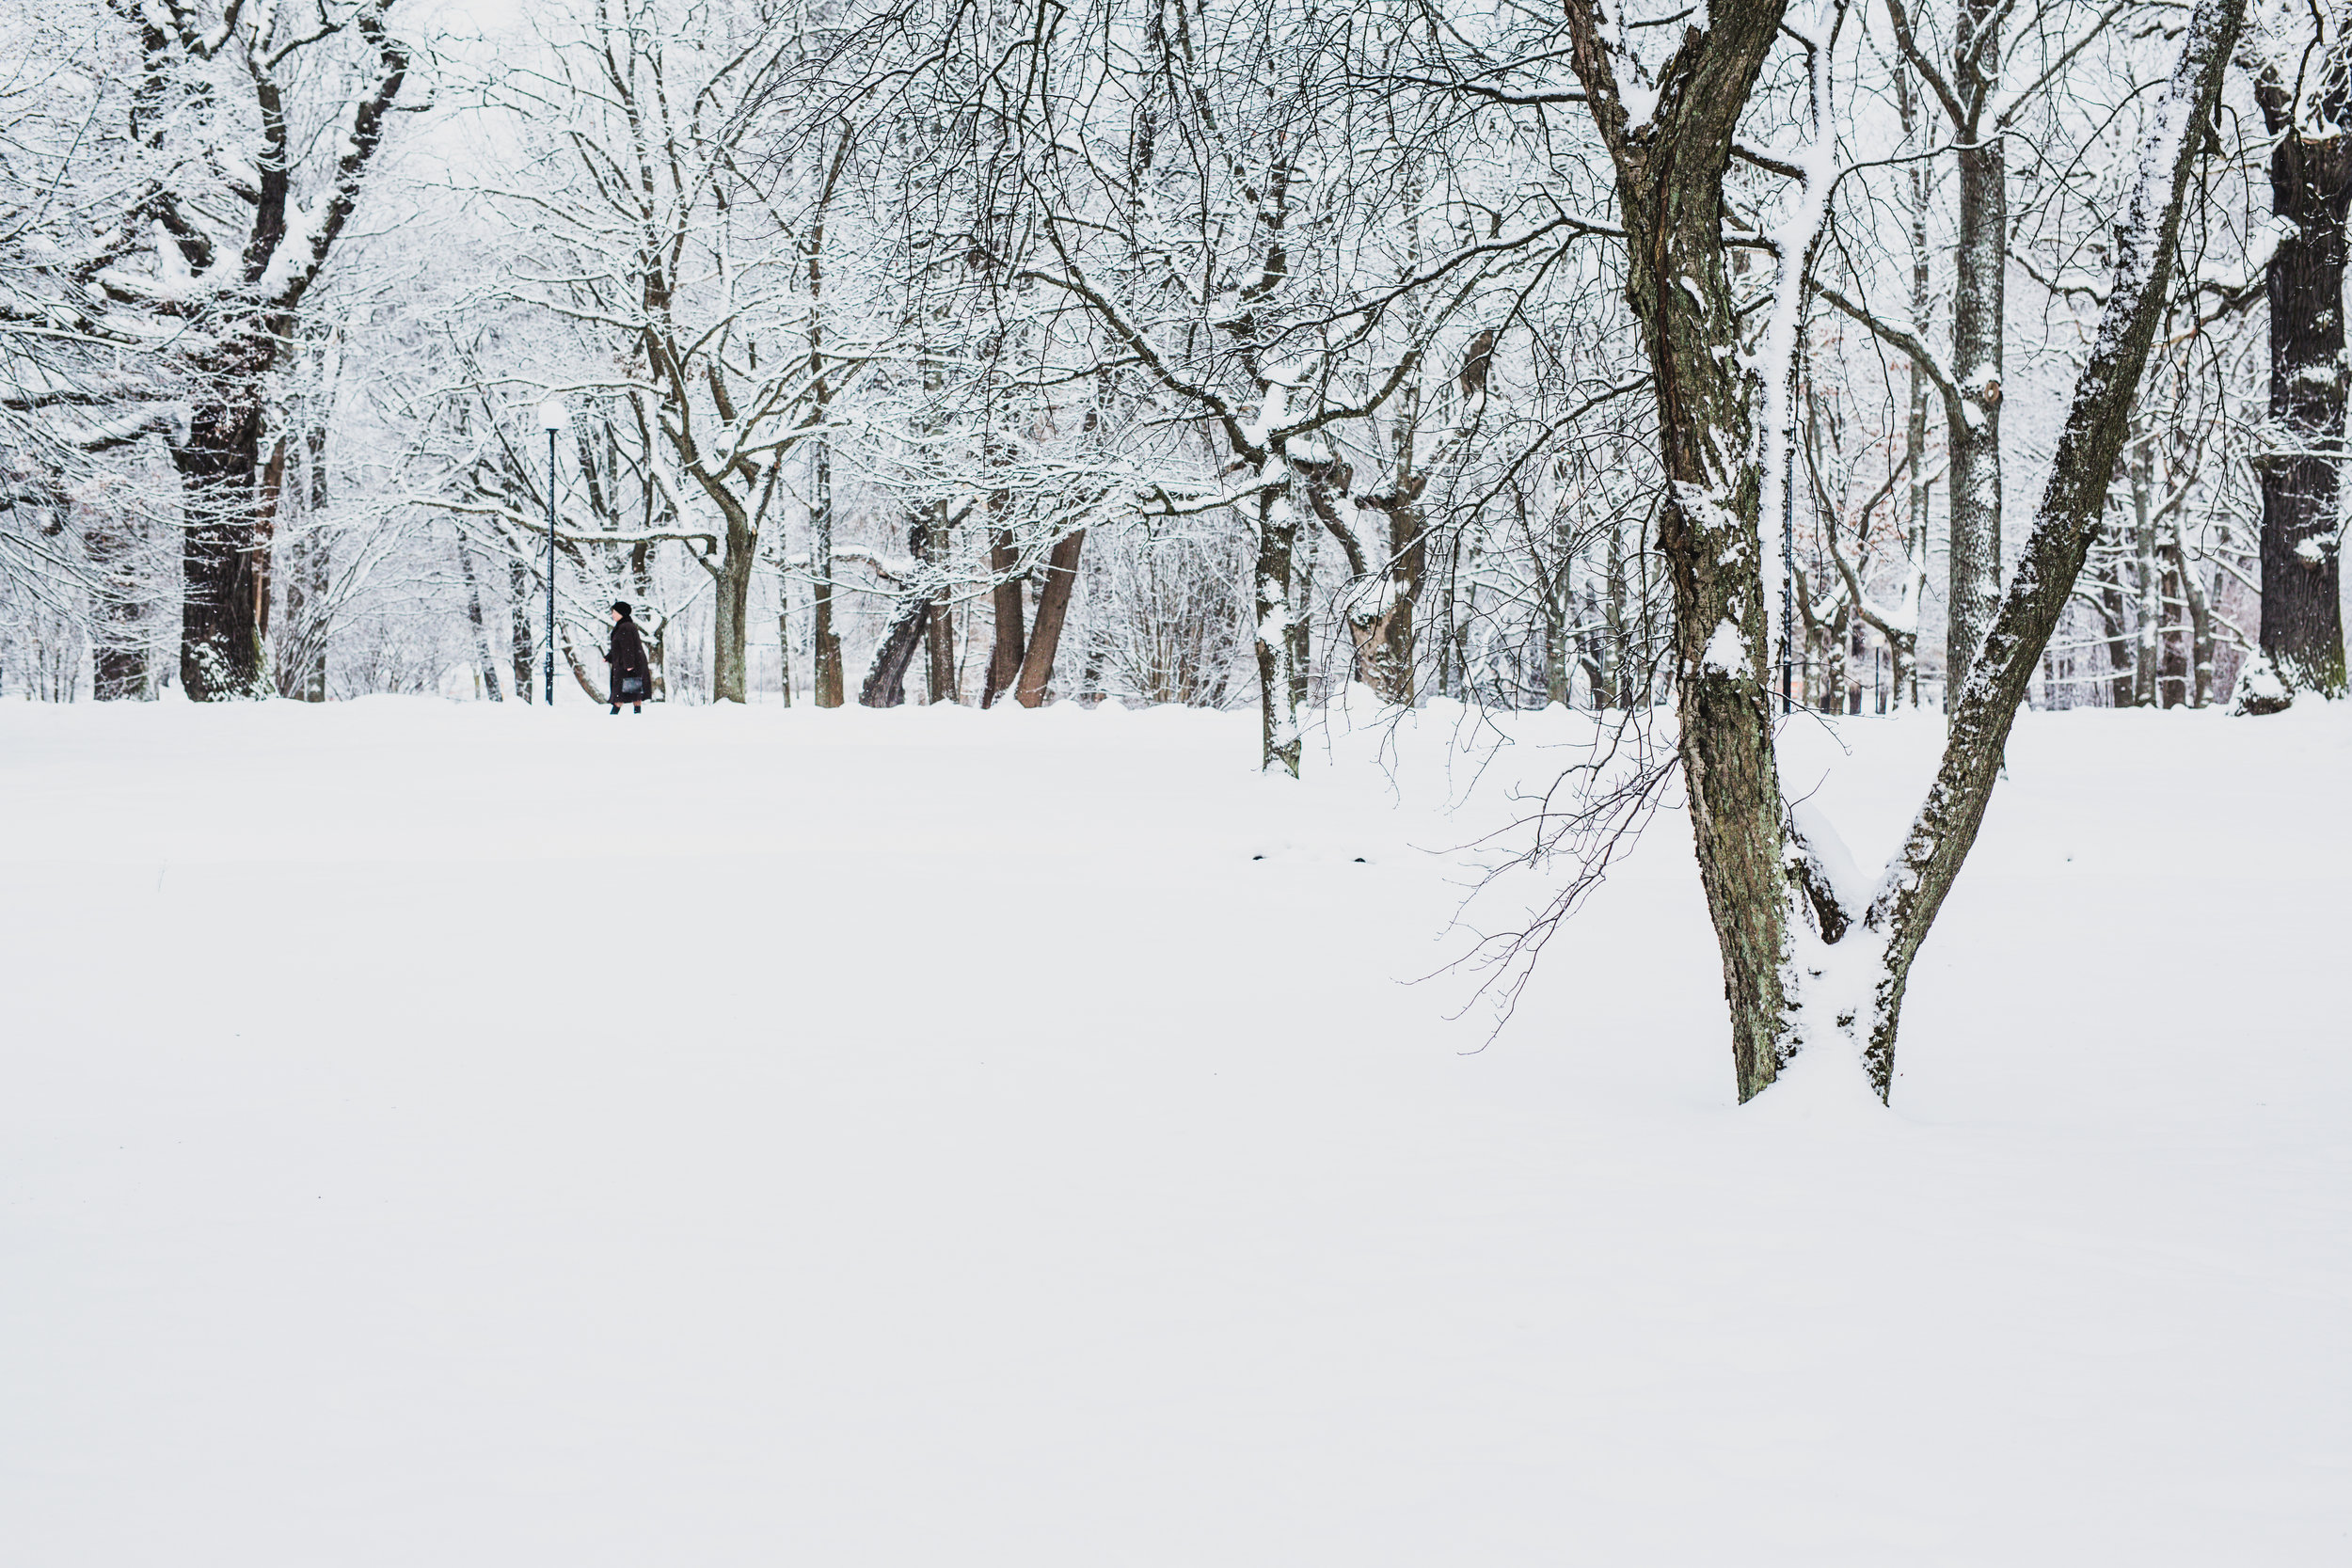 This was one of my happiest days in Tallinn. Dave had to go to Ethiopia, so I was alone in the city. It had snowed heavily all night and so I woke up and walked to the city's largest park and found magic. I took photos until my hands and feet were frozen, and felt so happy, and so alive.